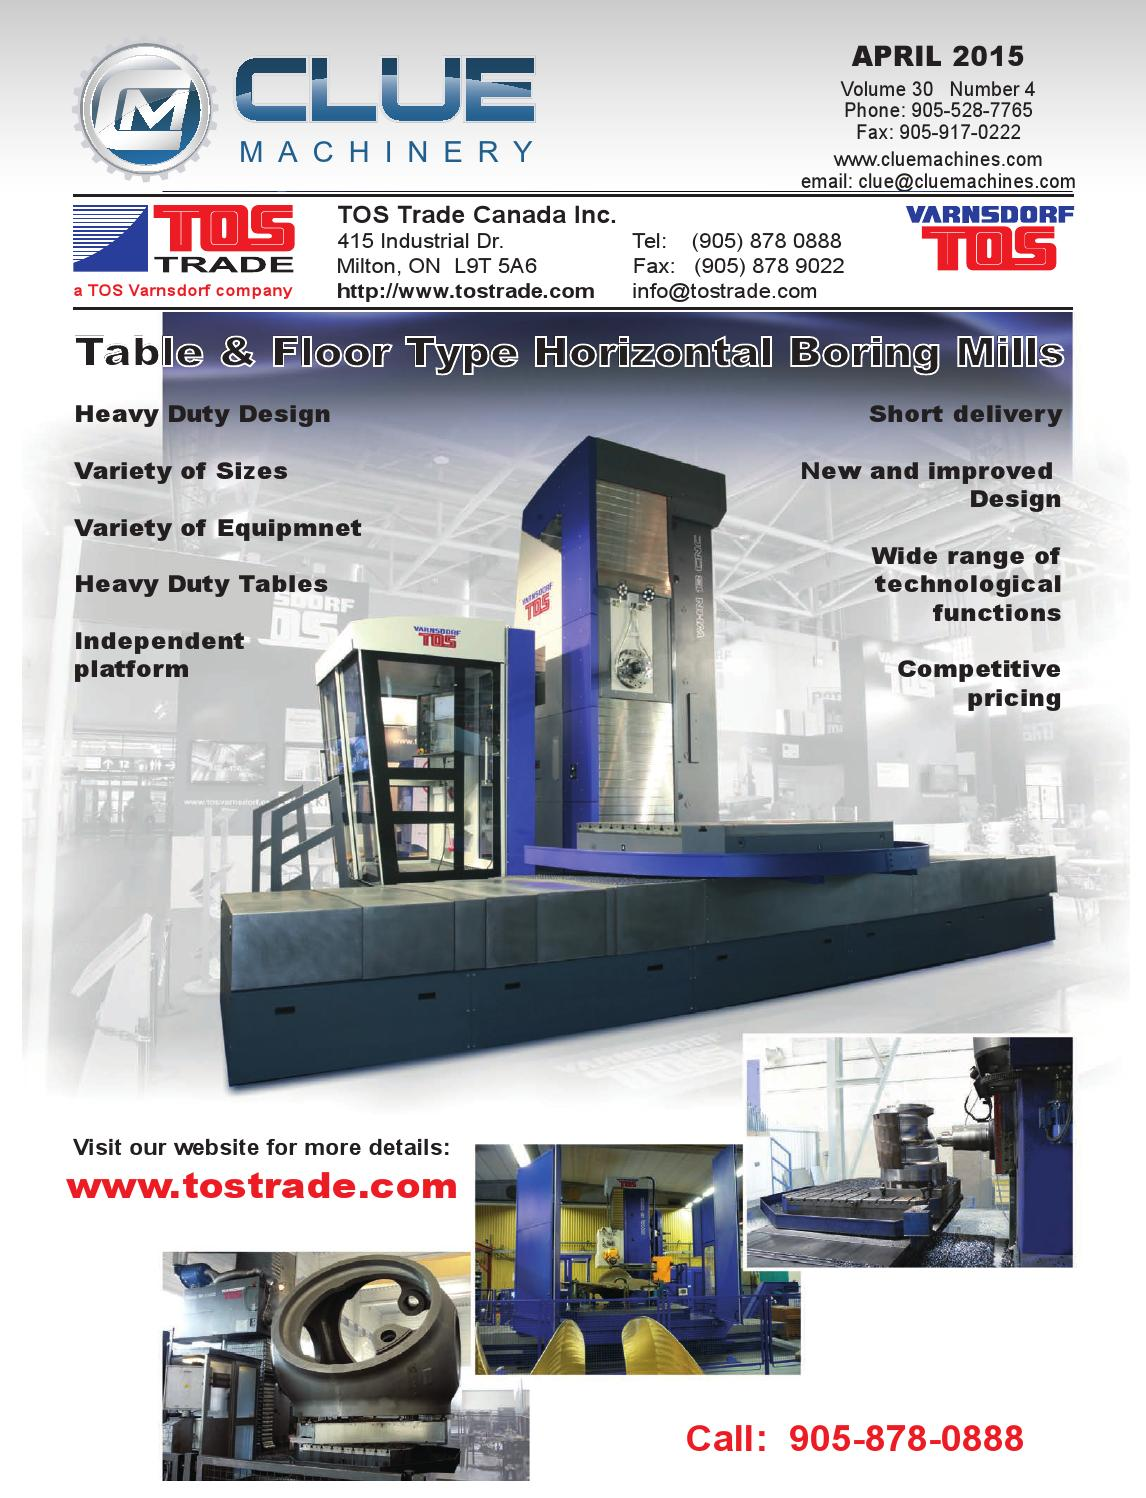 Clue Machinery - April 2015 Issue by Clue Machinery Advertiser - issuu